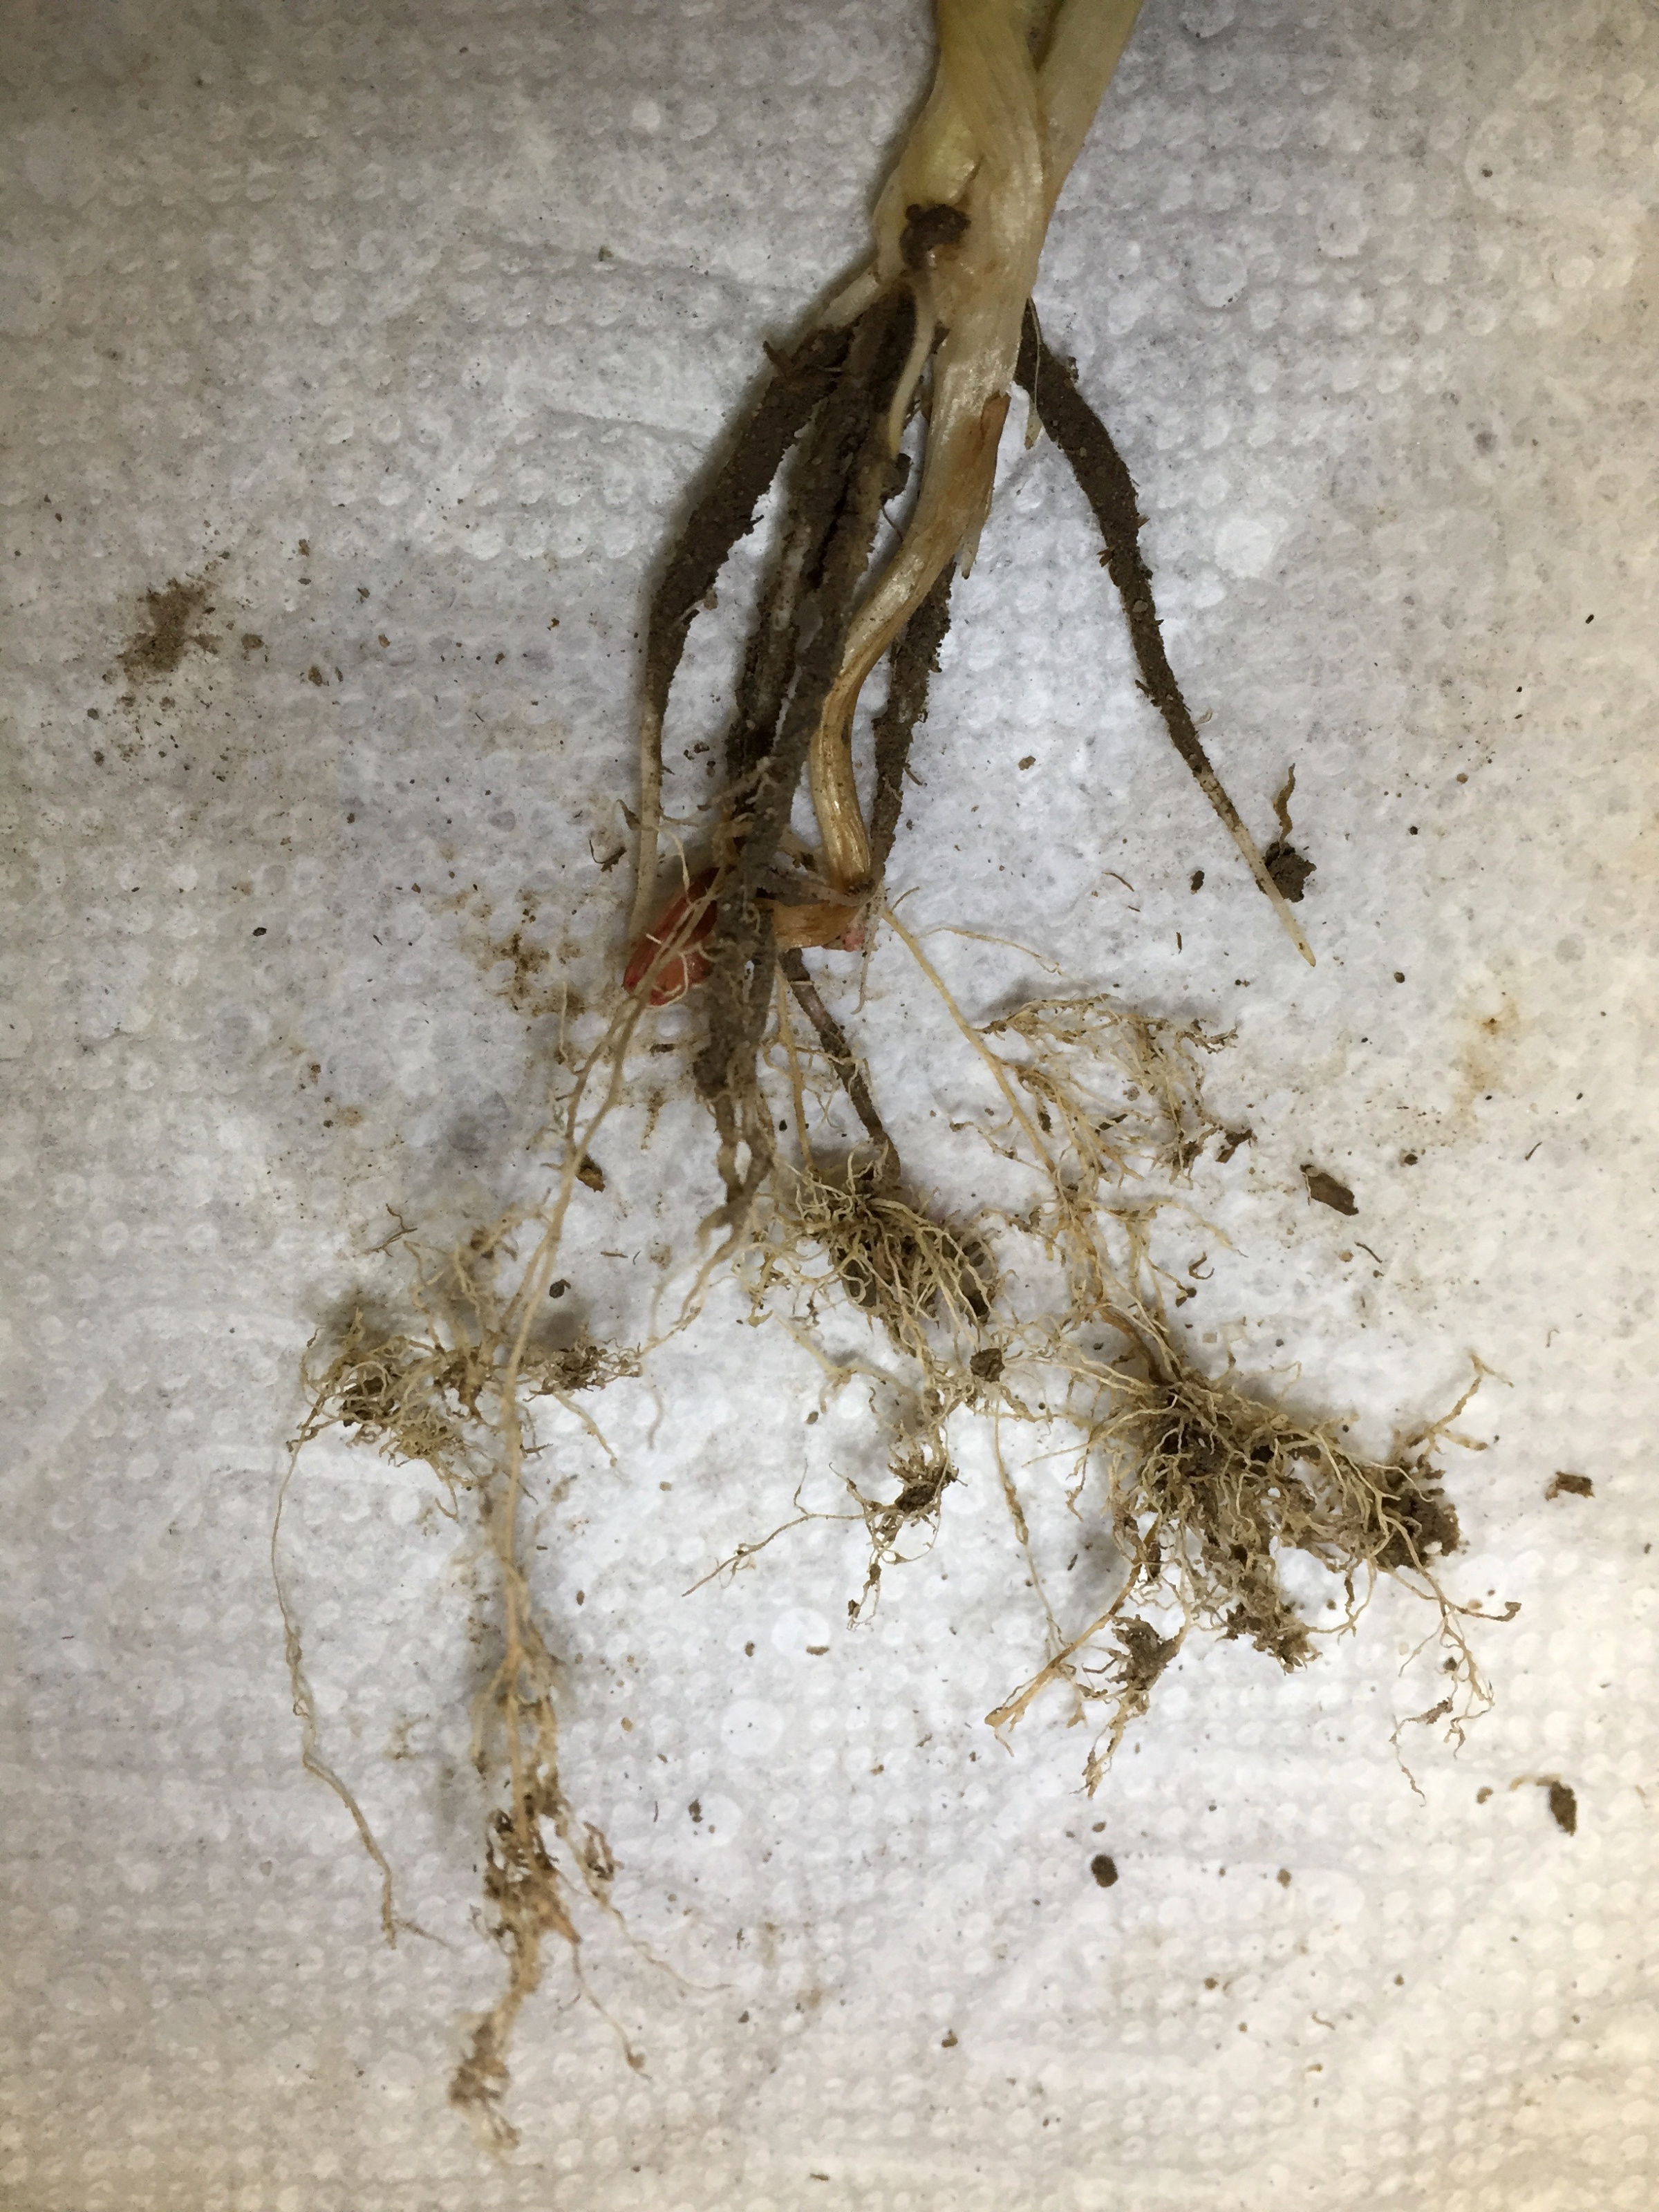 'Bushy knots' occur on roots at points of nematode invasion